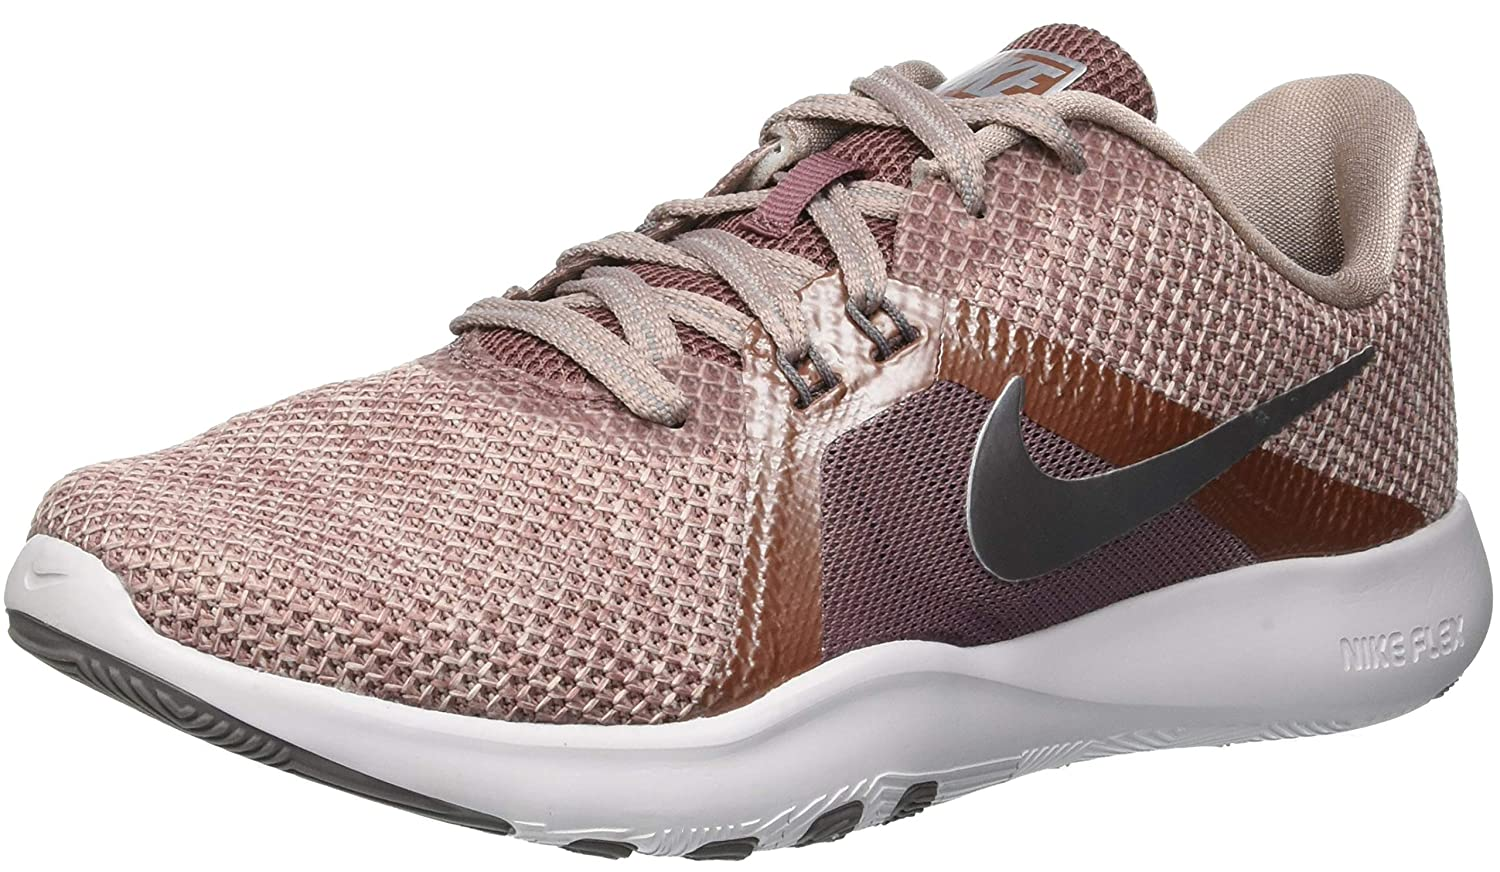 a5ee1bd11974 Nike Women s Flex Trainer 8 PRM Running Shoes  Amazon.co.uk  Shoes   Bags